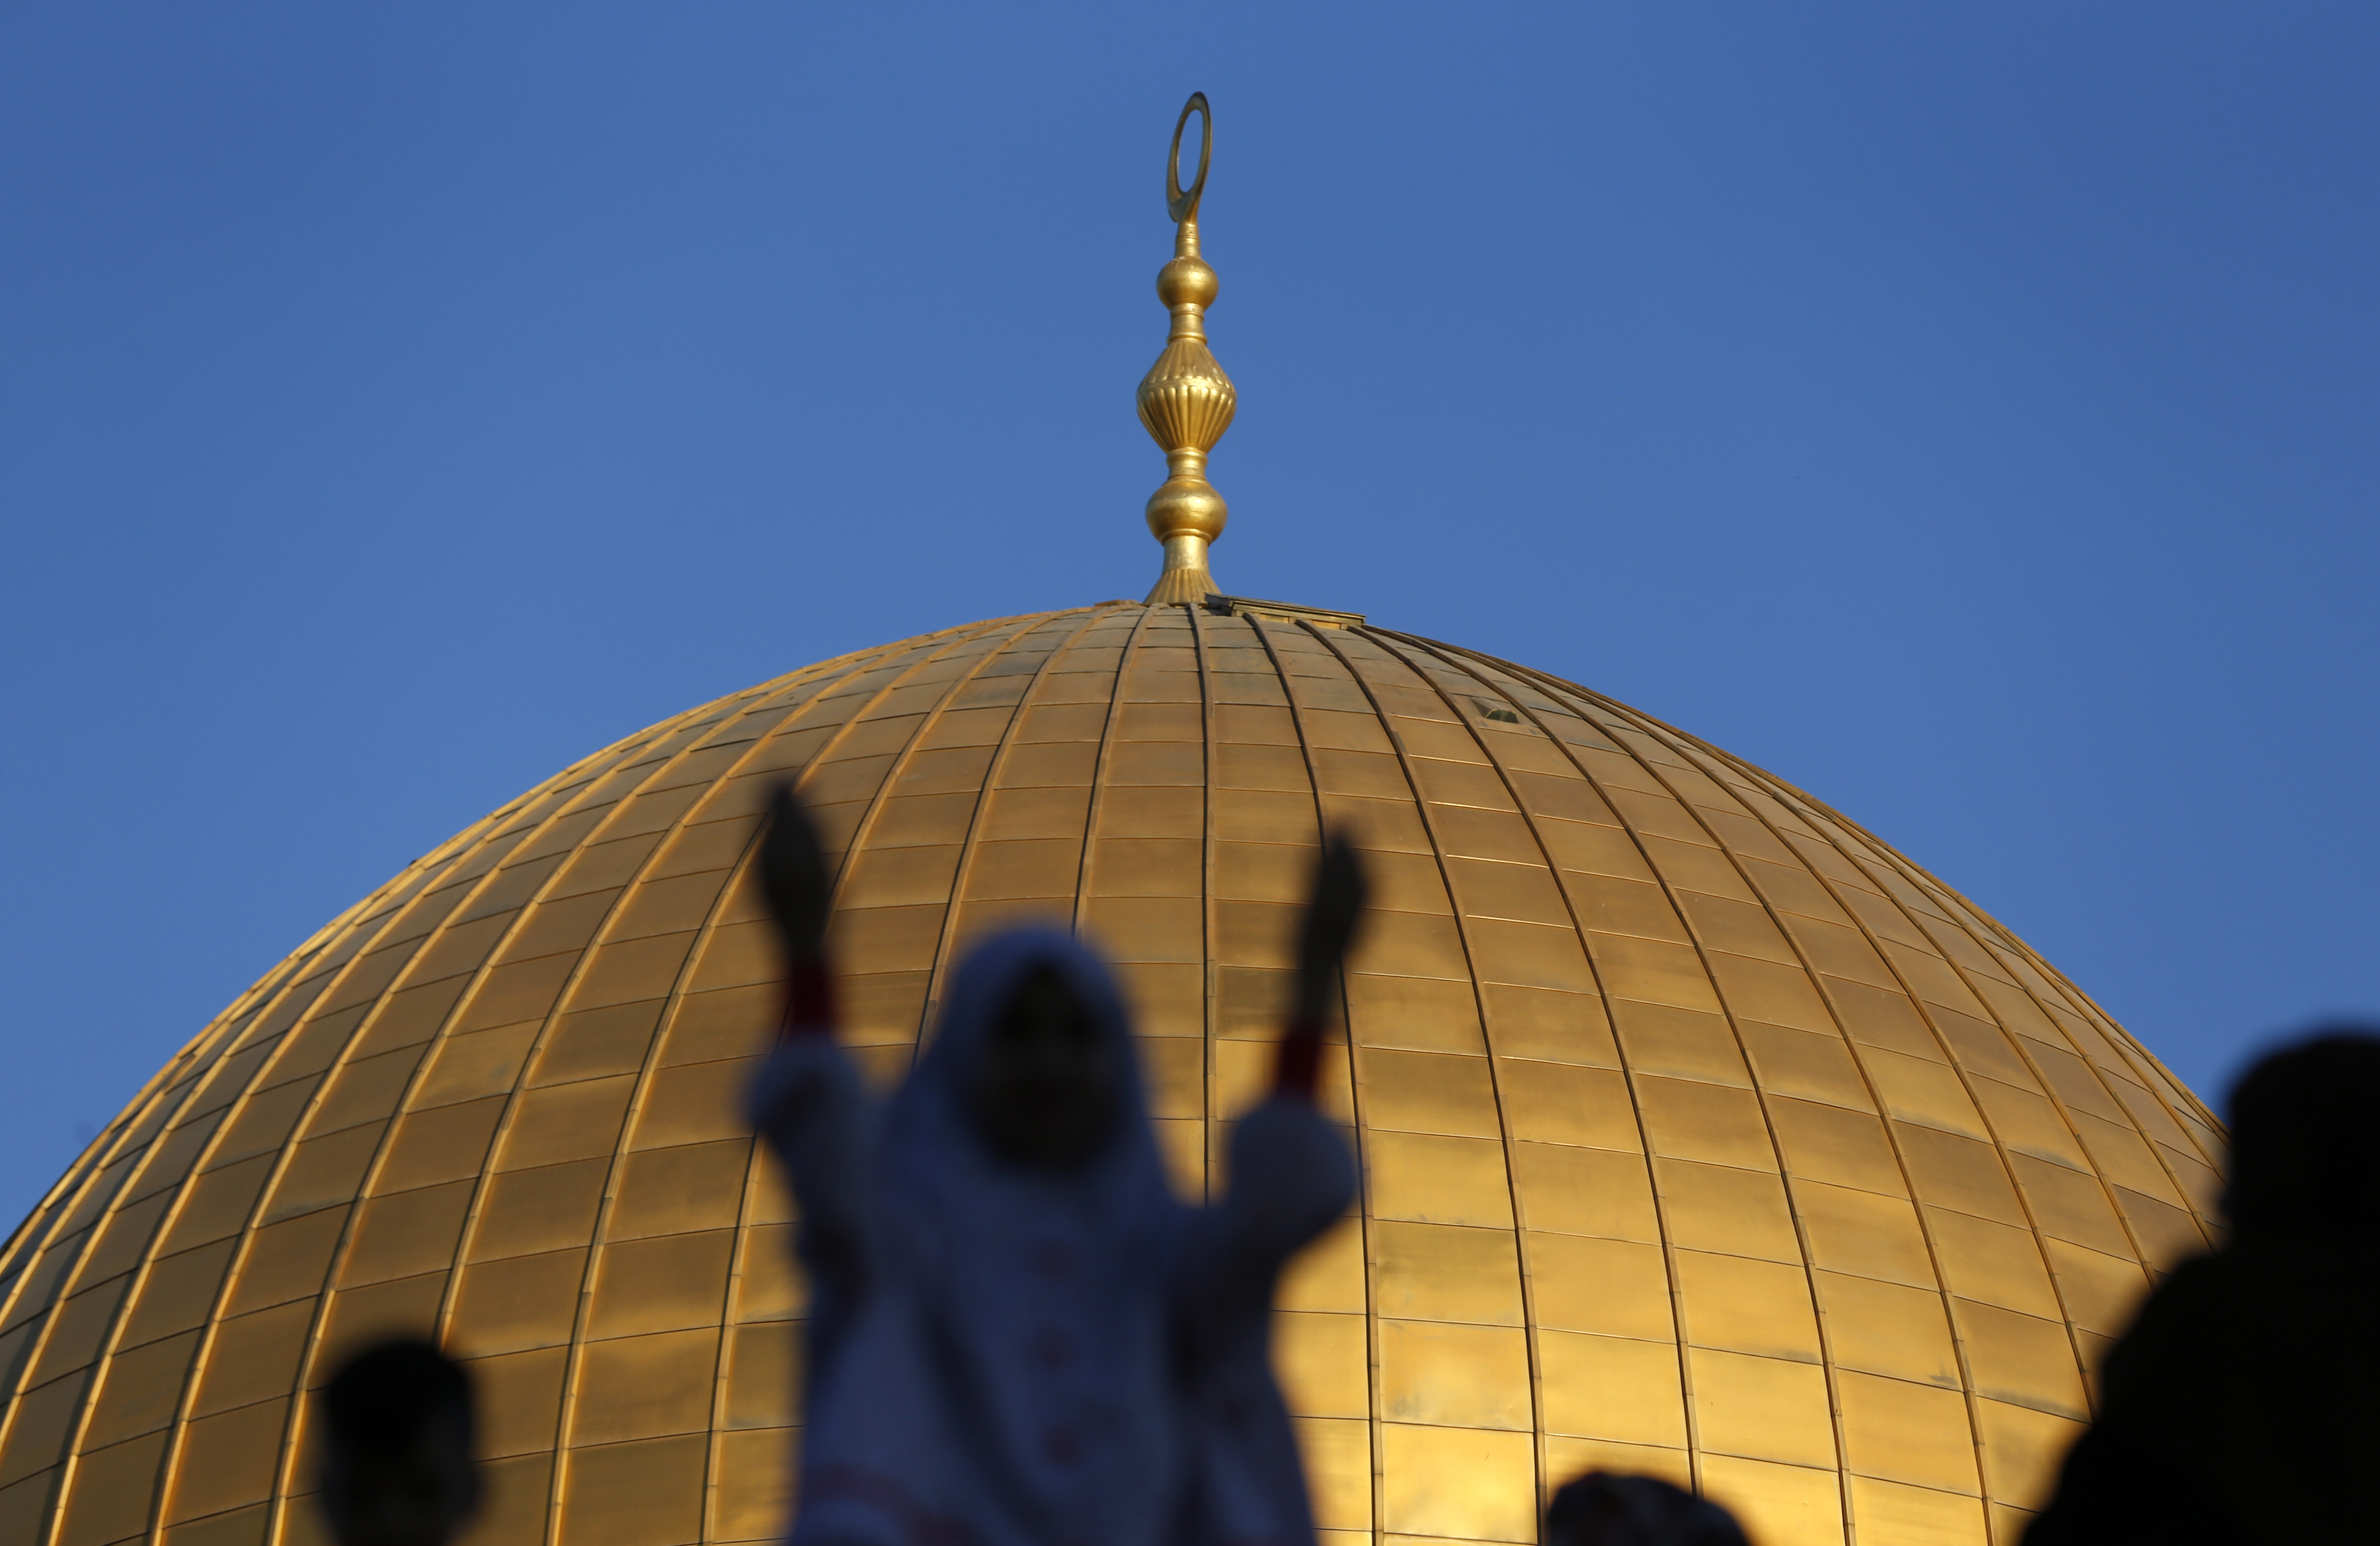 Palestinians Eid al-Fitr prayer Dome of Rock Jerusalem (AFP)